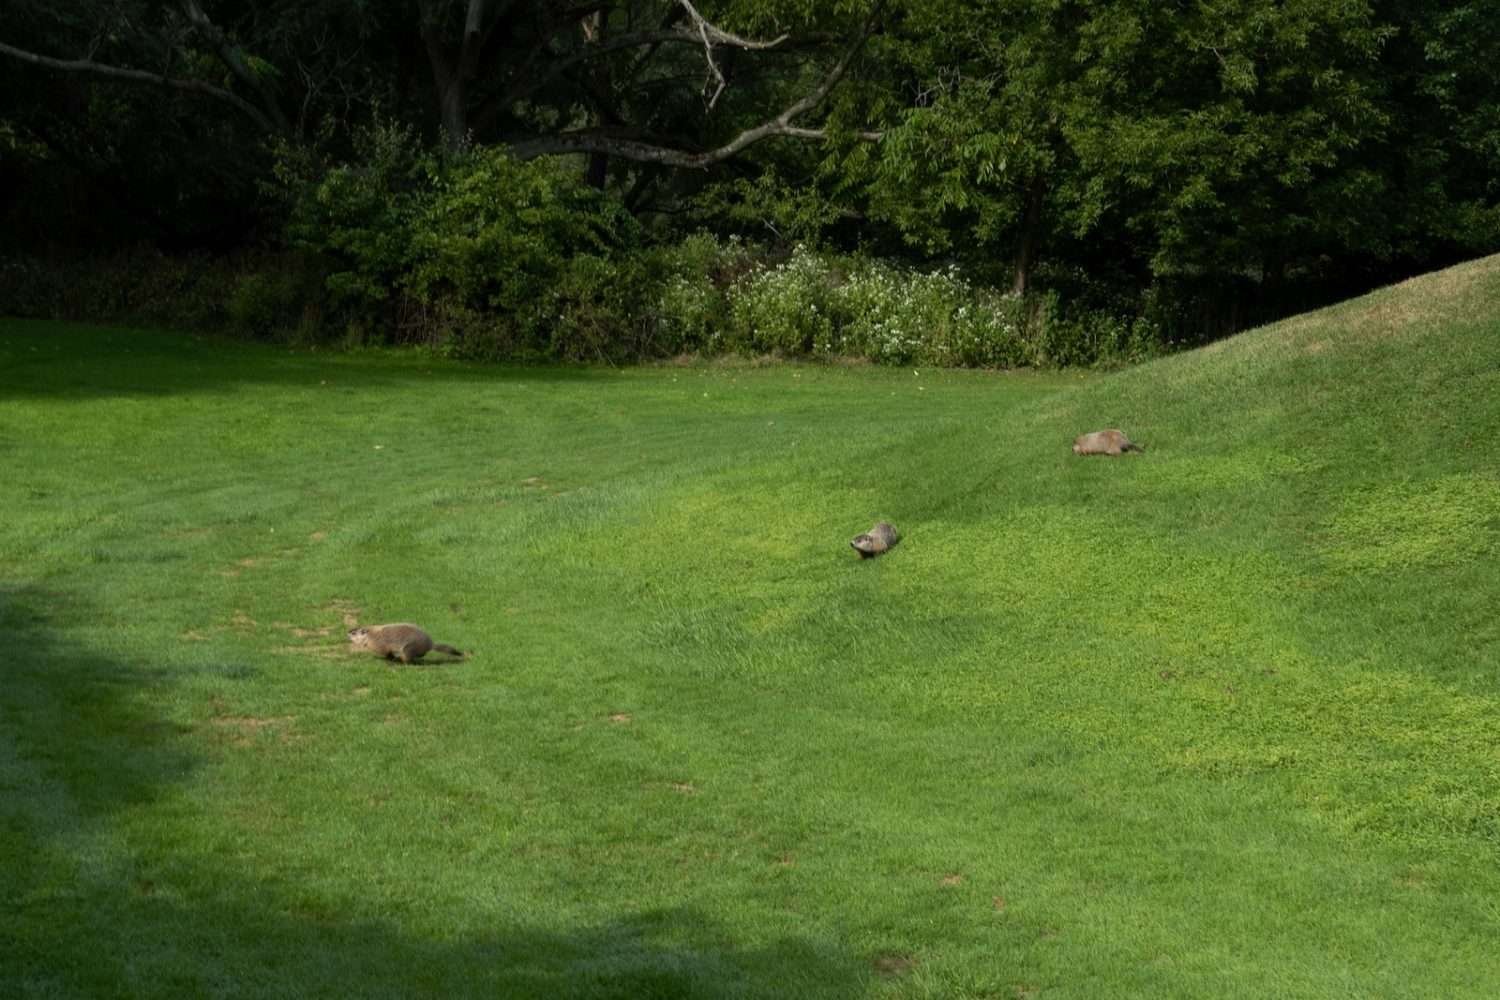 Three ground hogs on the golf course at Durand Eastman